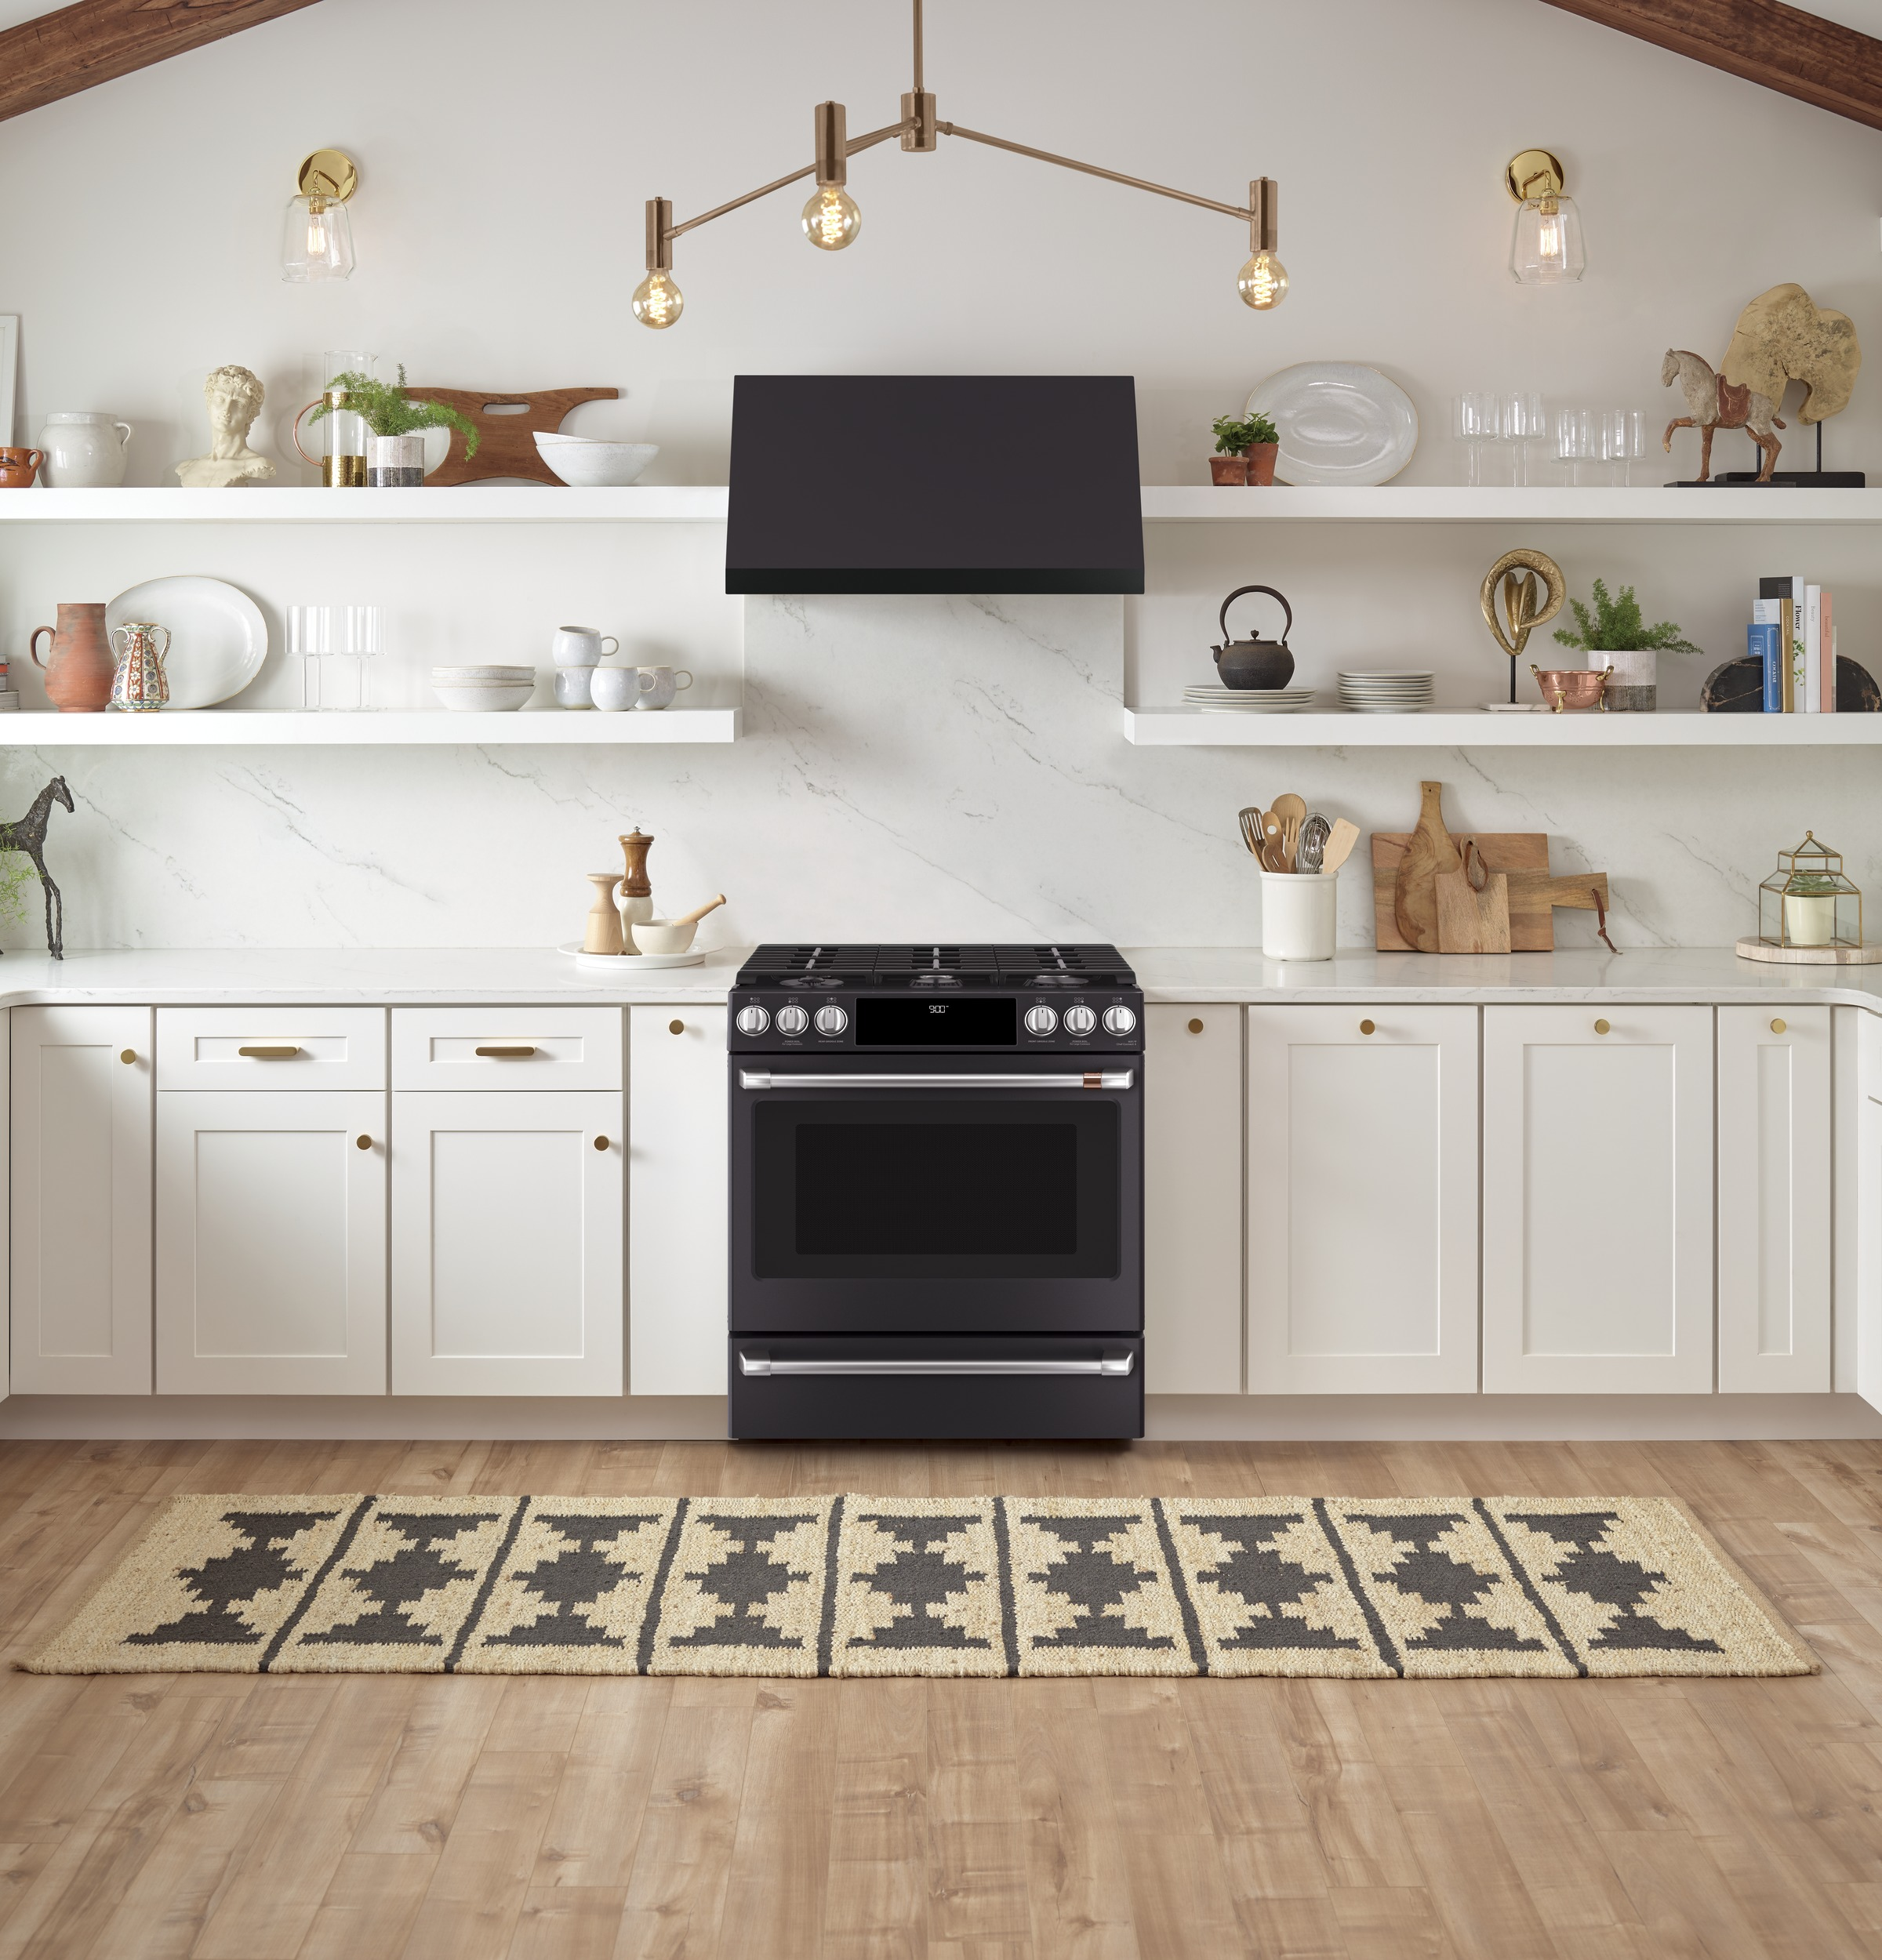 Choosing on-trend appliances for any décor